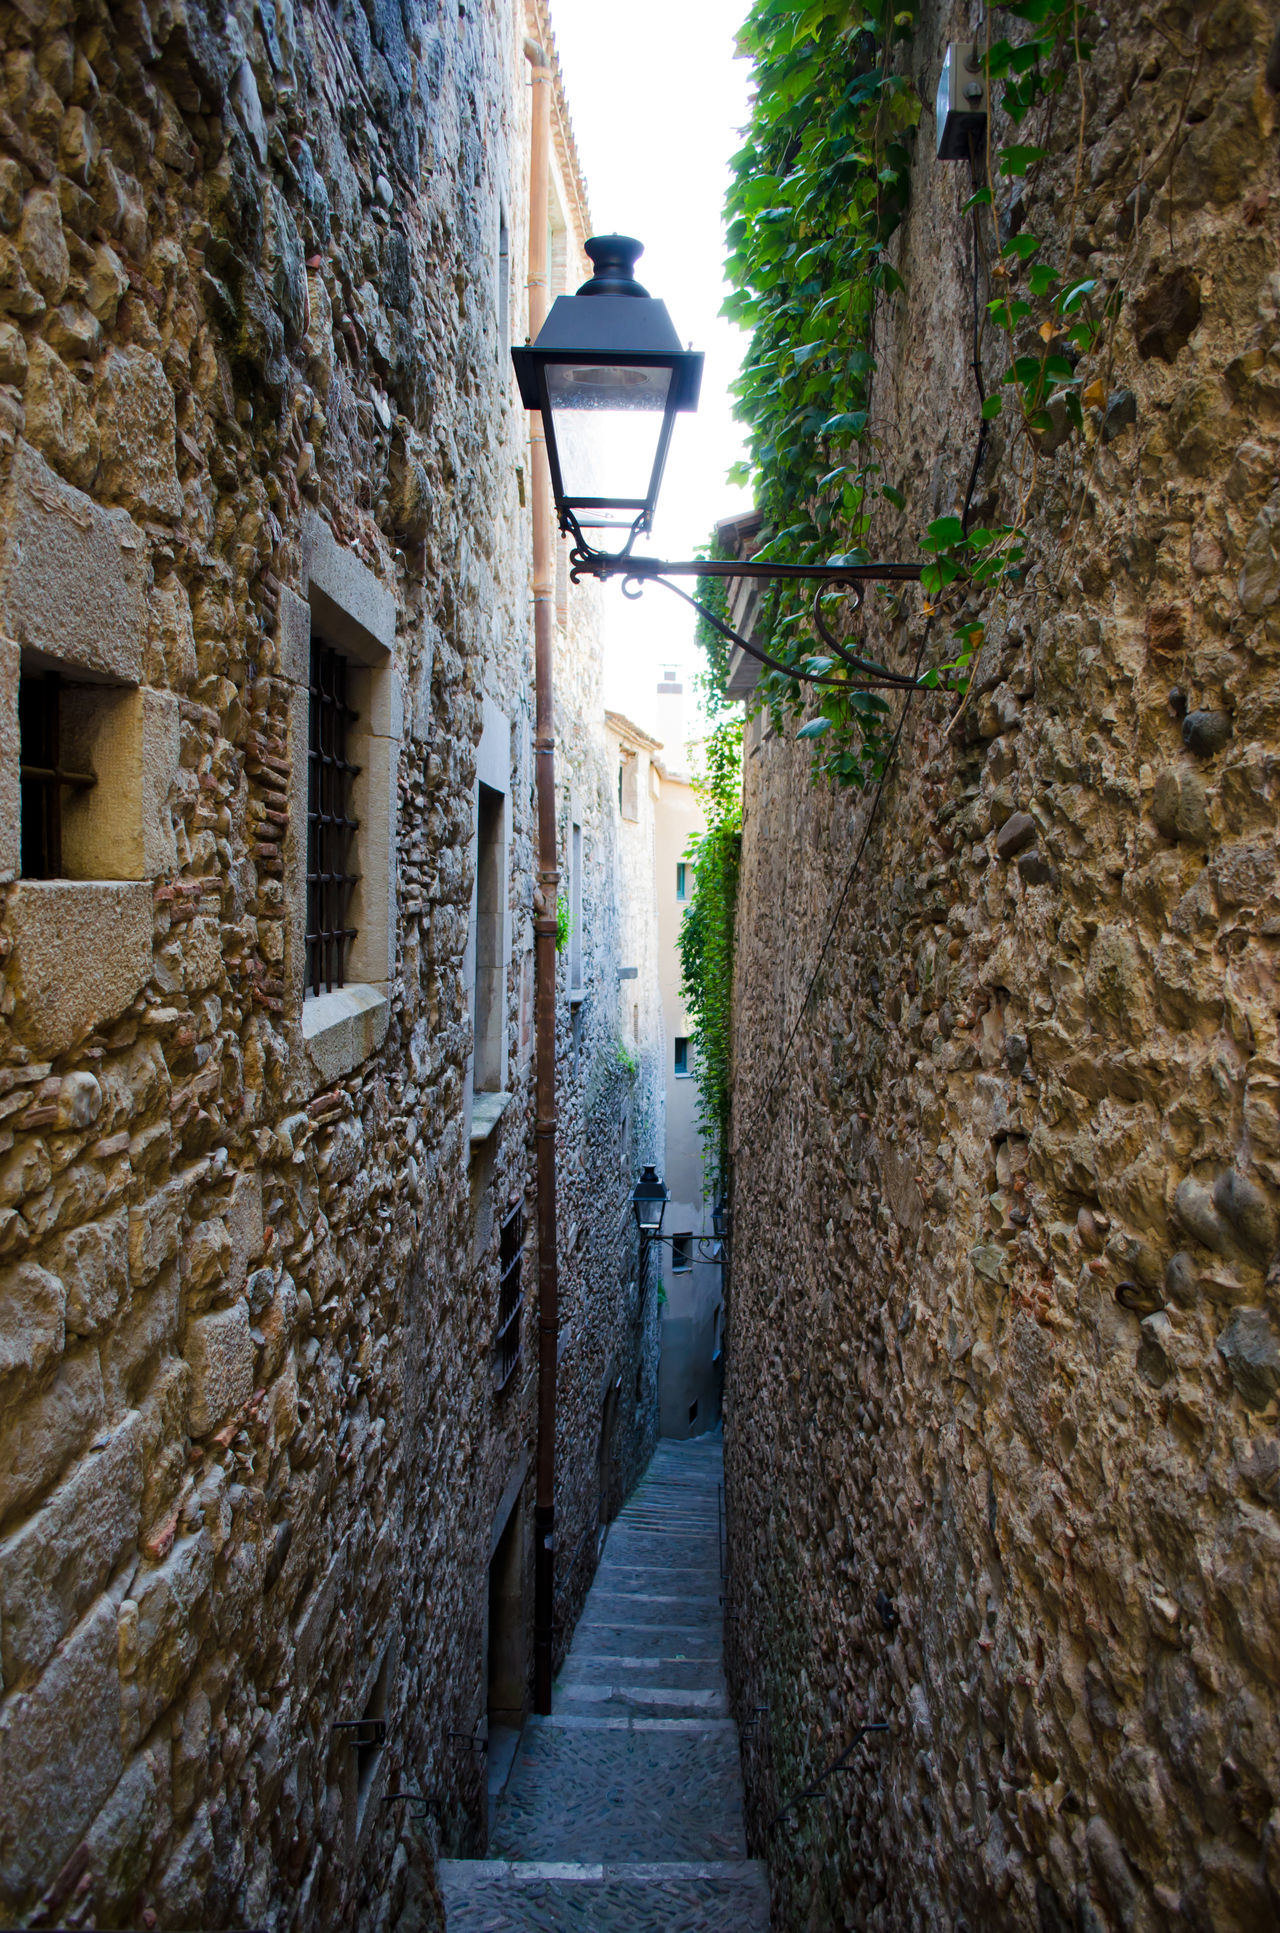 Abandoned Alley Ancient Civilization Architecture Building Building Exterior Catalunya Corridor Damaged Deterioration Door Girona House Leading Light And Shadow Middle Ages Narrow Old Ruined SPAIN Stears Steps Wall Wall - Building Feature Window